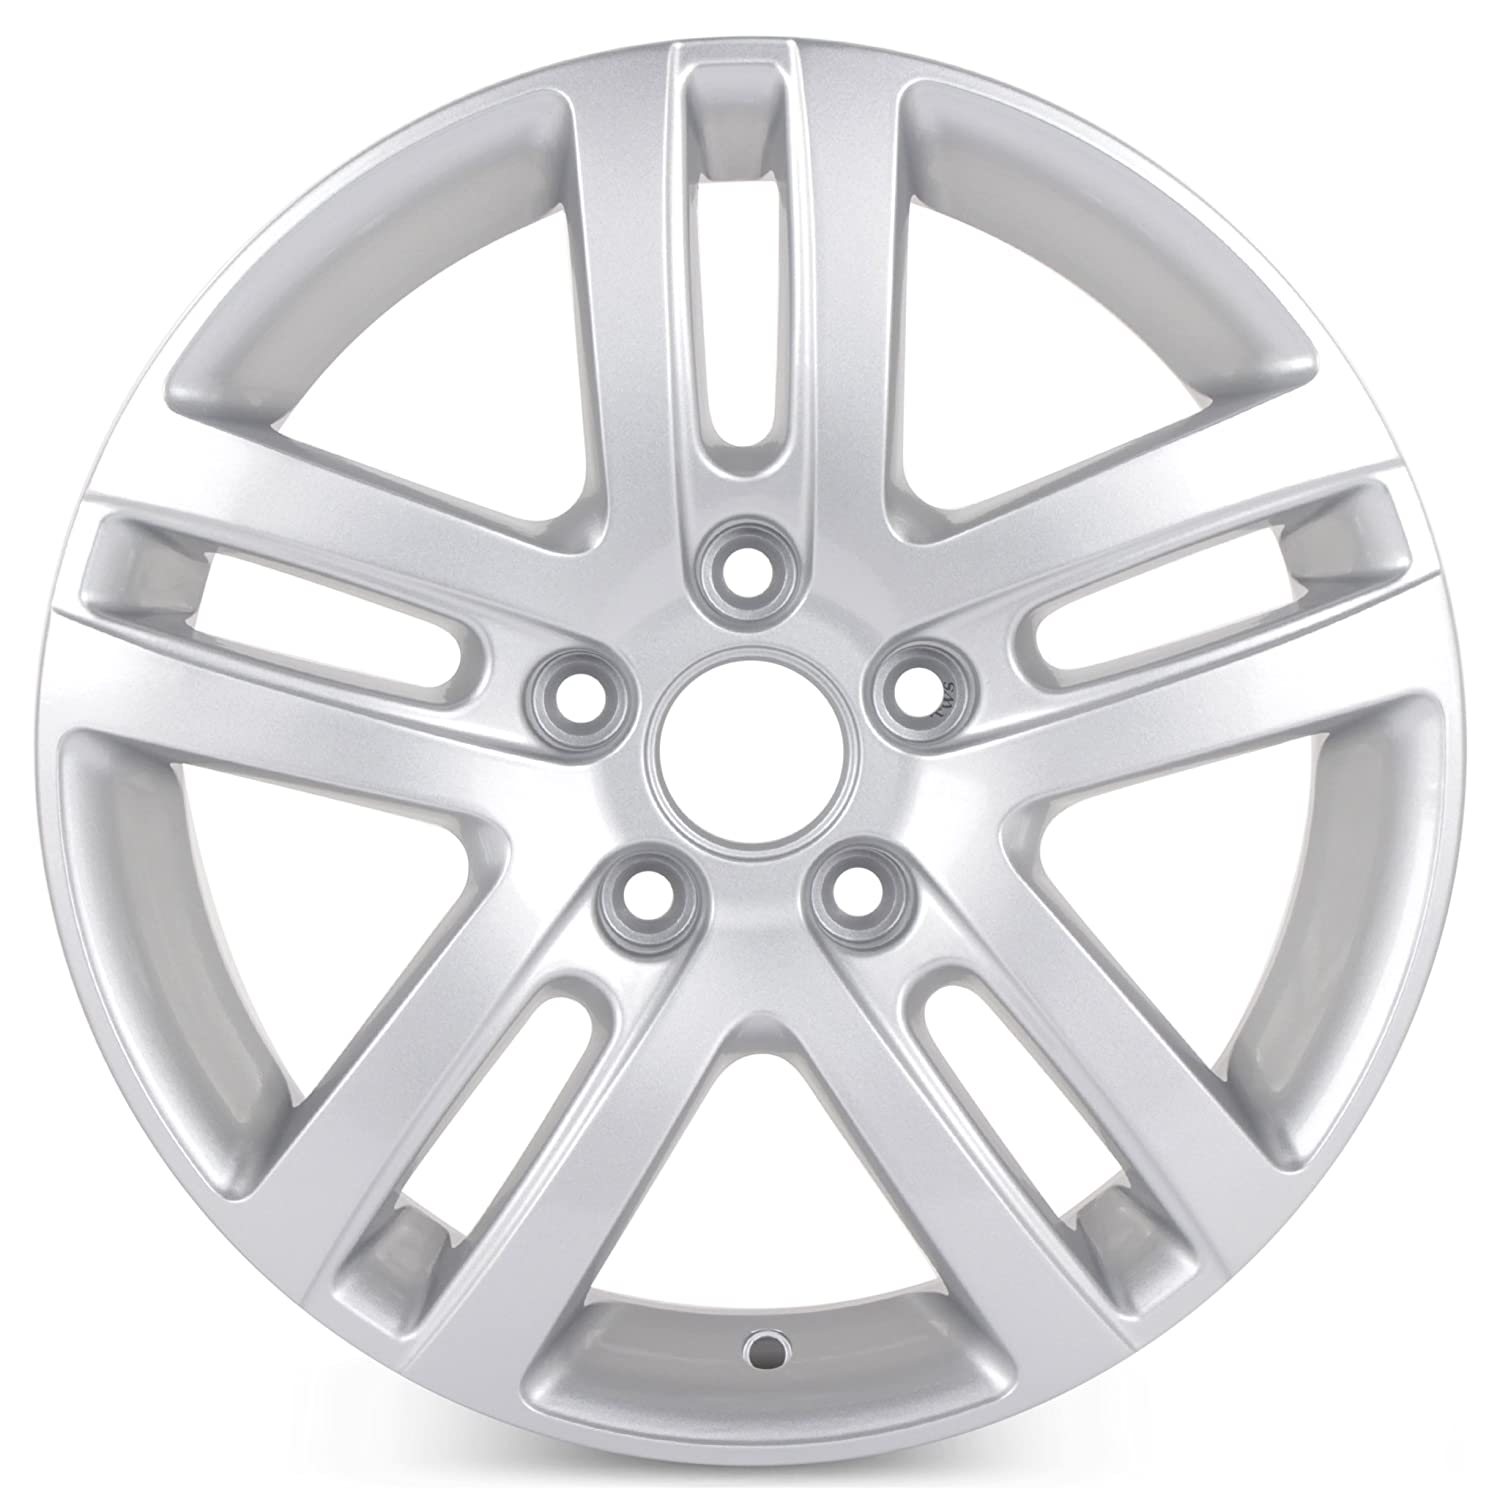 amazon new 16 alloy replacement wheel for volkswagen jetta vw Volkswagen GTI Lowered amazon new 16 alloy replacement wheel for volkswagen jetta vw 2005 2006 2007 2008 2009 2010 2011 2012 2013 2014 2015 2016 2017 silver rim 69812